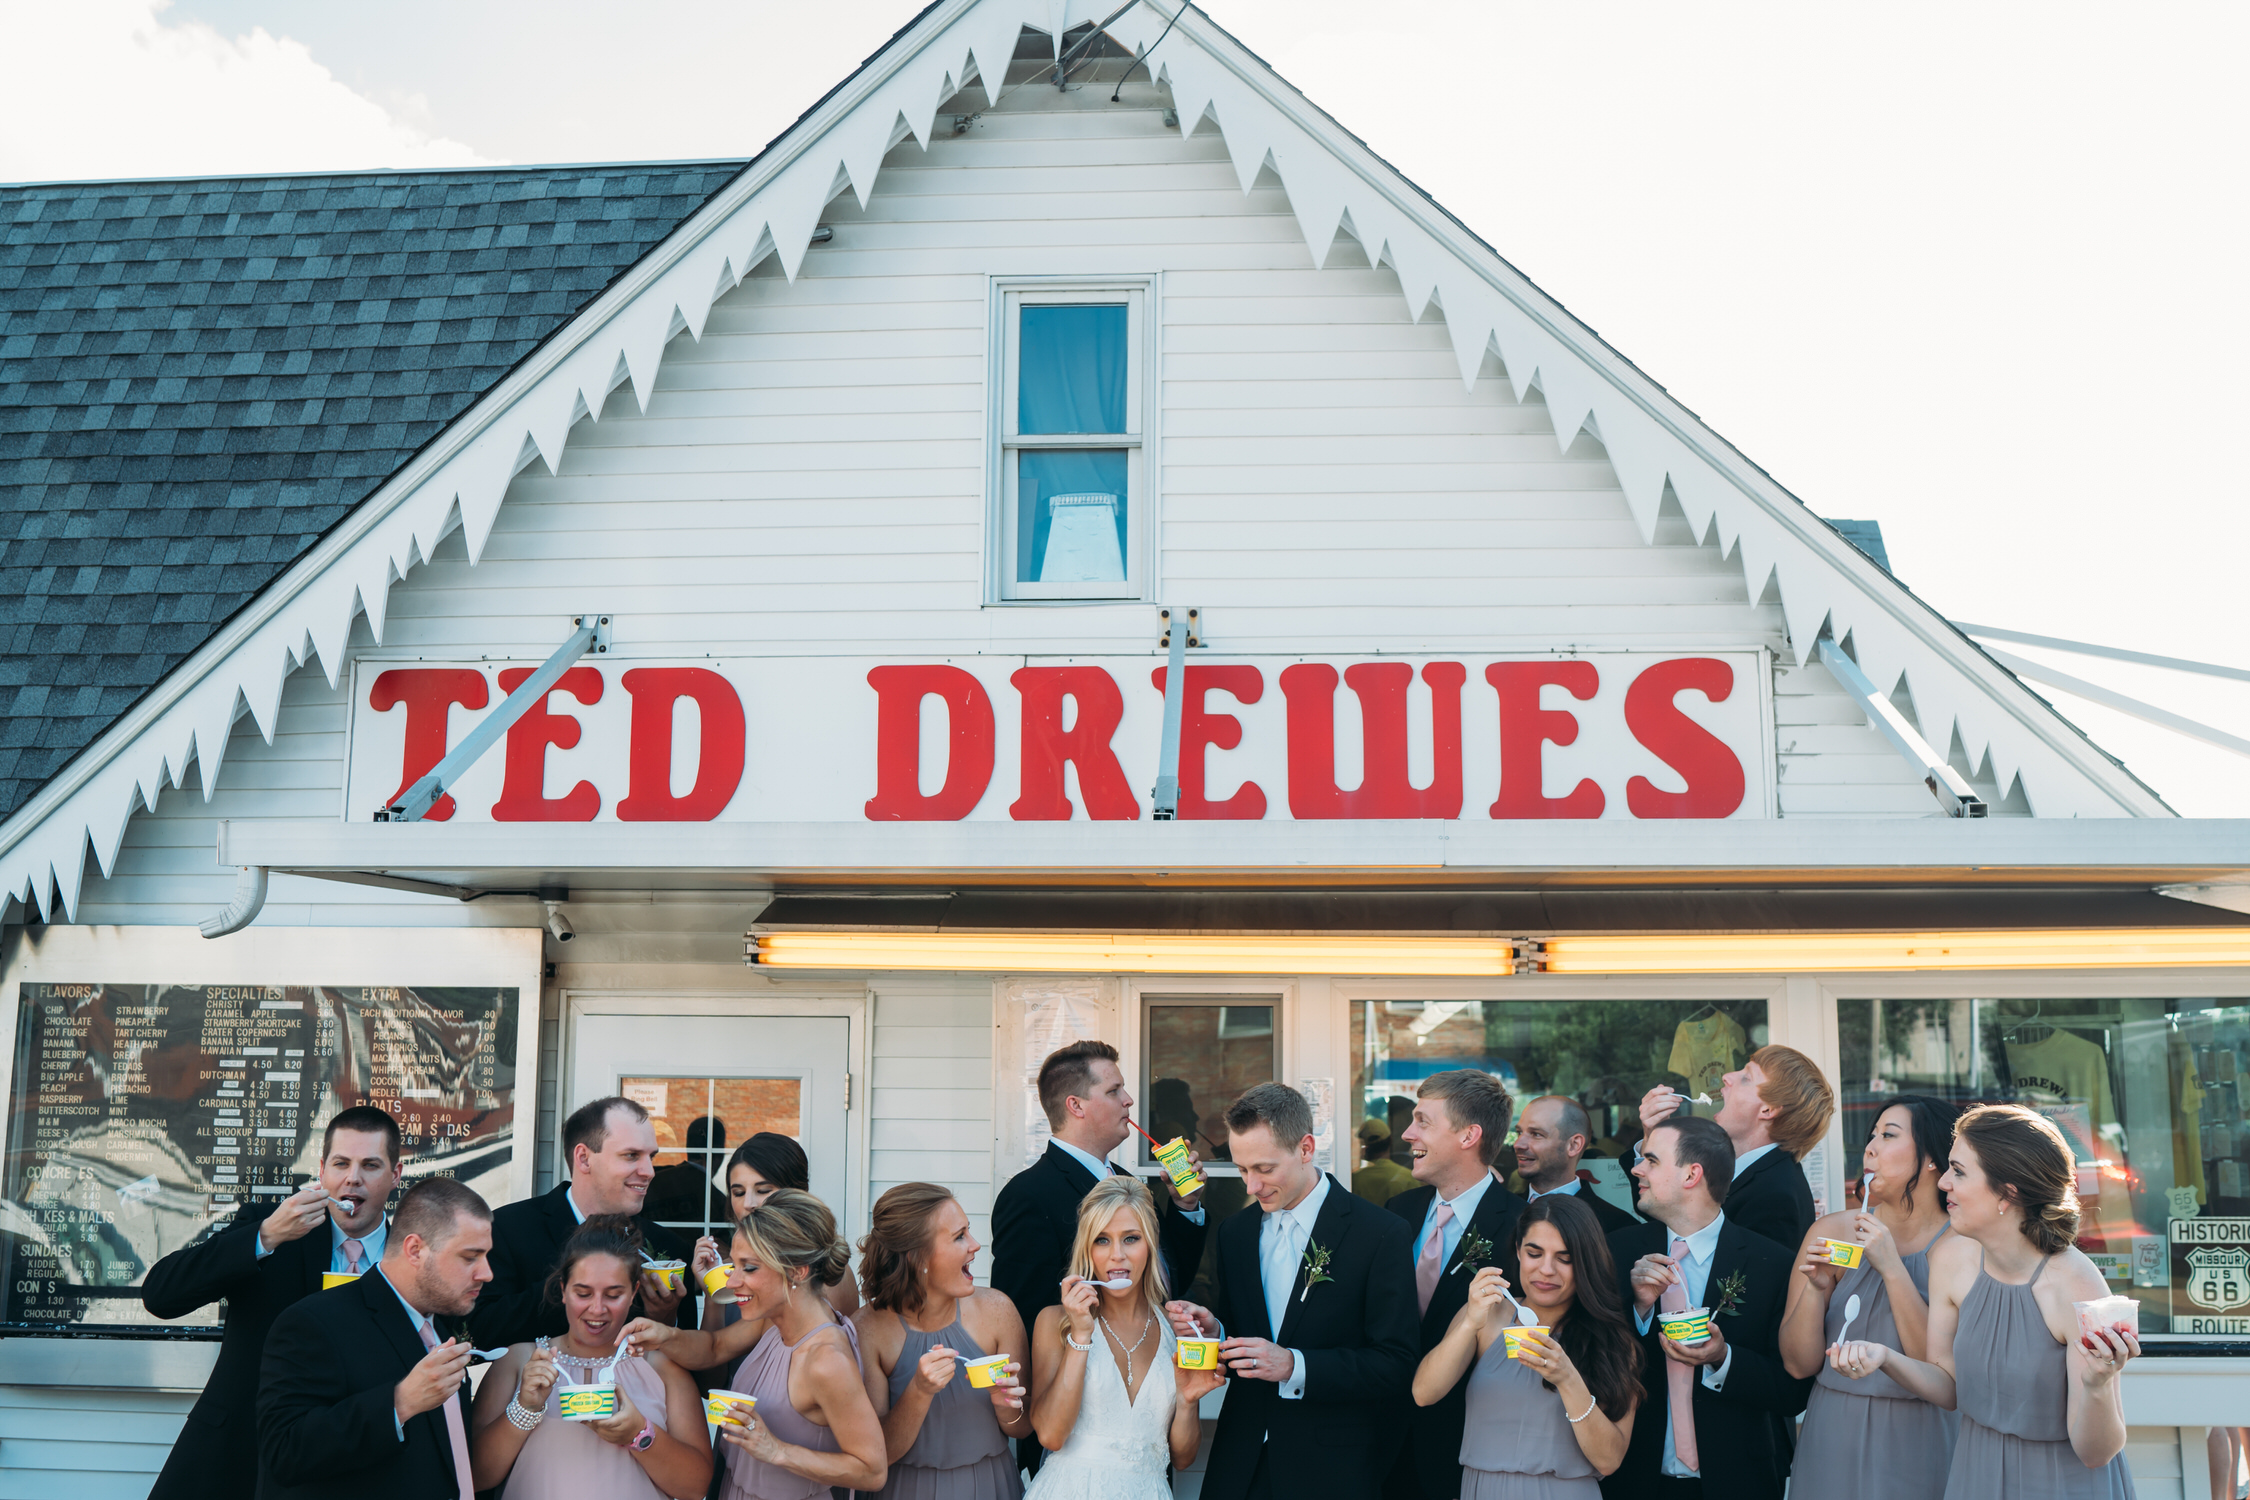 Wedding party photos, group photos at a wedding, relaxed wedding photos, St Louis Wedding Photographer, Wedding photos at Ted Drewes